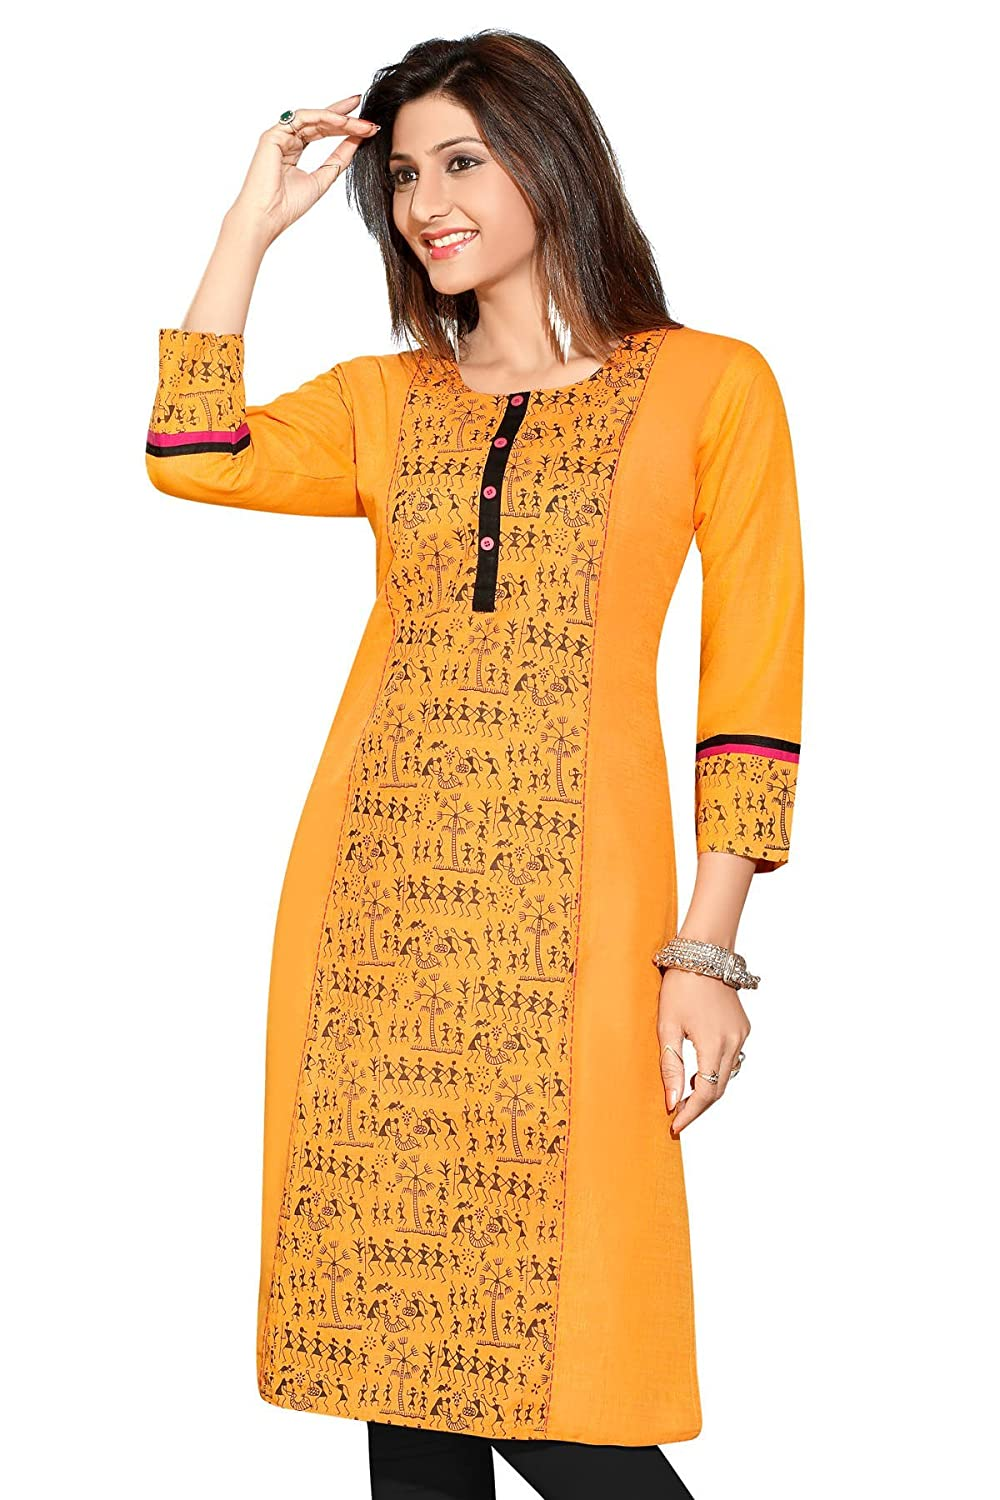 Indian Tunic Top Women's Long Printed Cotton Kurti